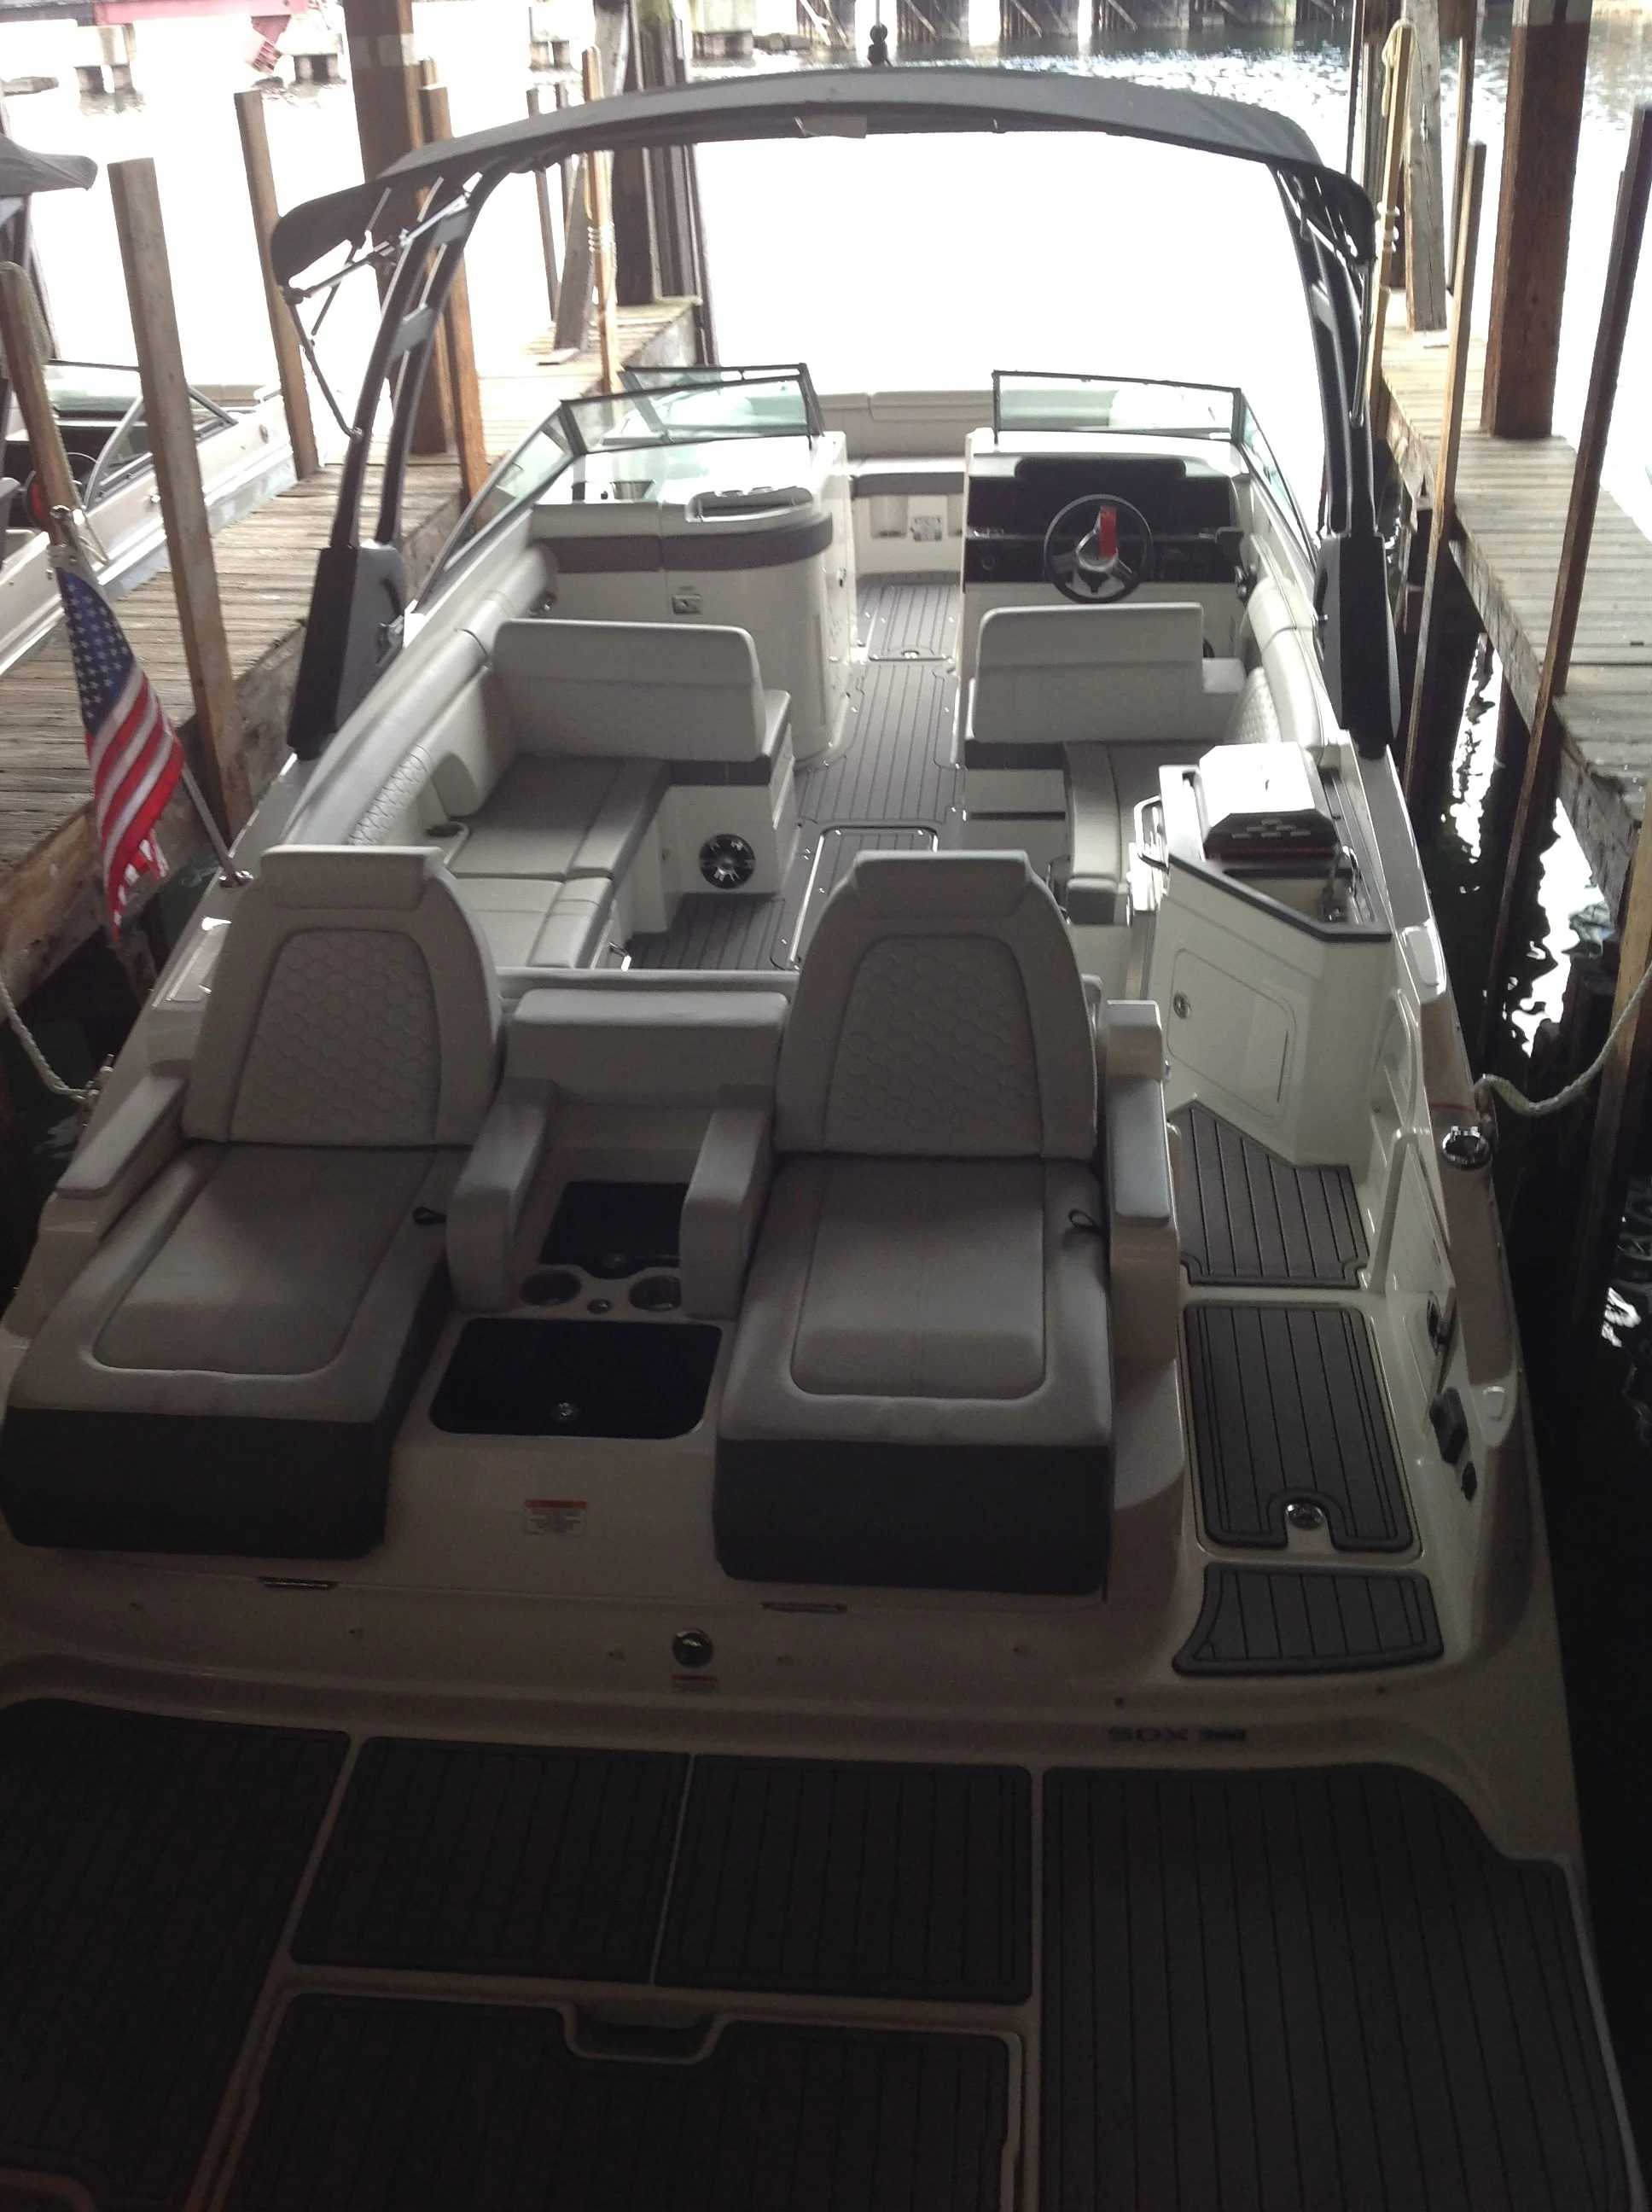 2021 Sea Ray boat for sale, model of the boat is 290 sdx & Image # 11 of 12